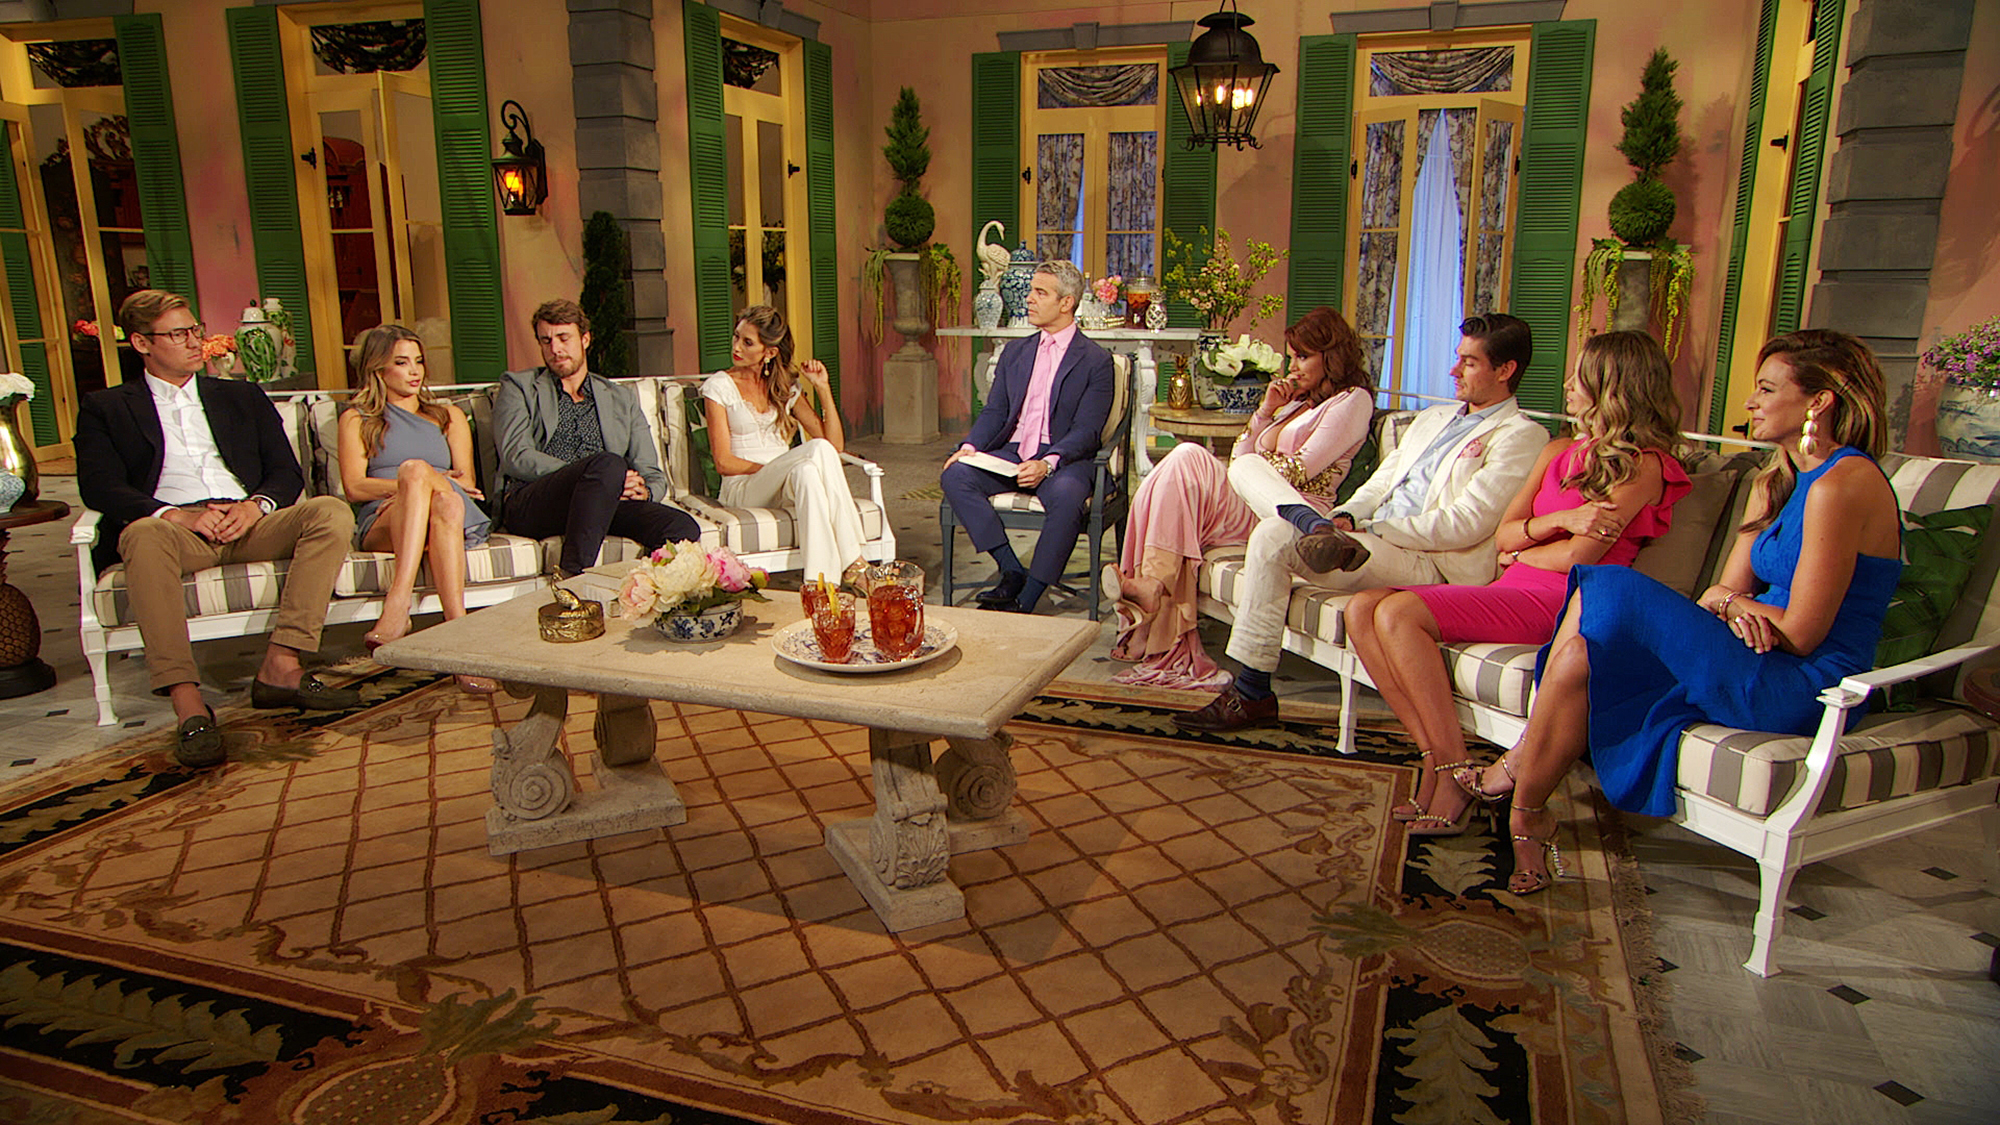 Everything We Know About 'Southern Charm' Season 6 - A source tells Us that the cast, which includes Kathryn Dennis, Shep Rose, Cameran Eubanks, Craig Conover, Naomie Olindo, Austen Kroll and Chelsea Meissner, started filming at the beginning of October.